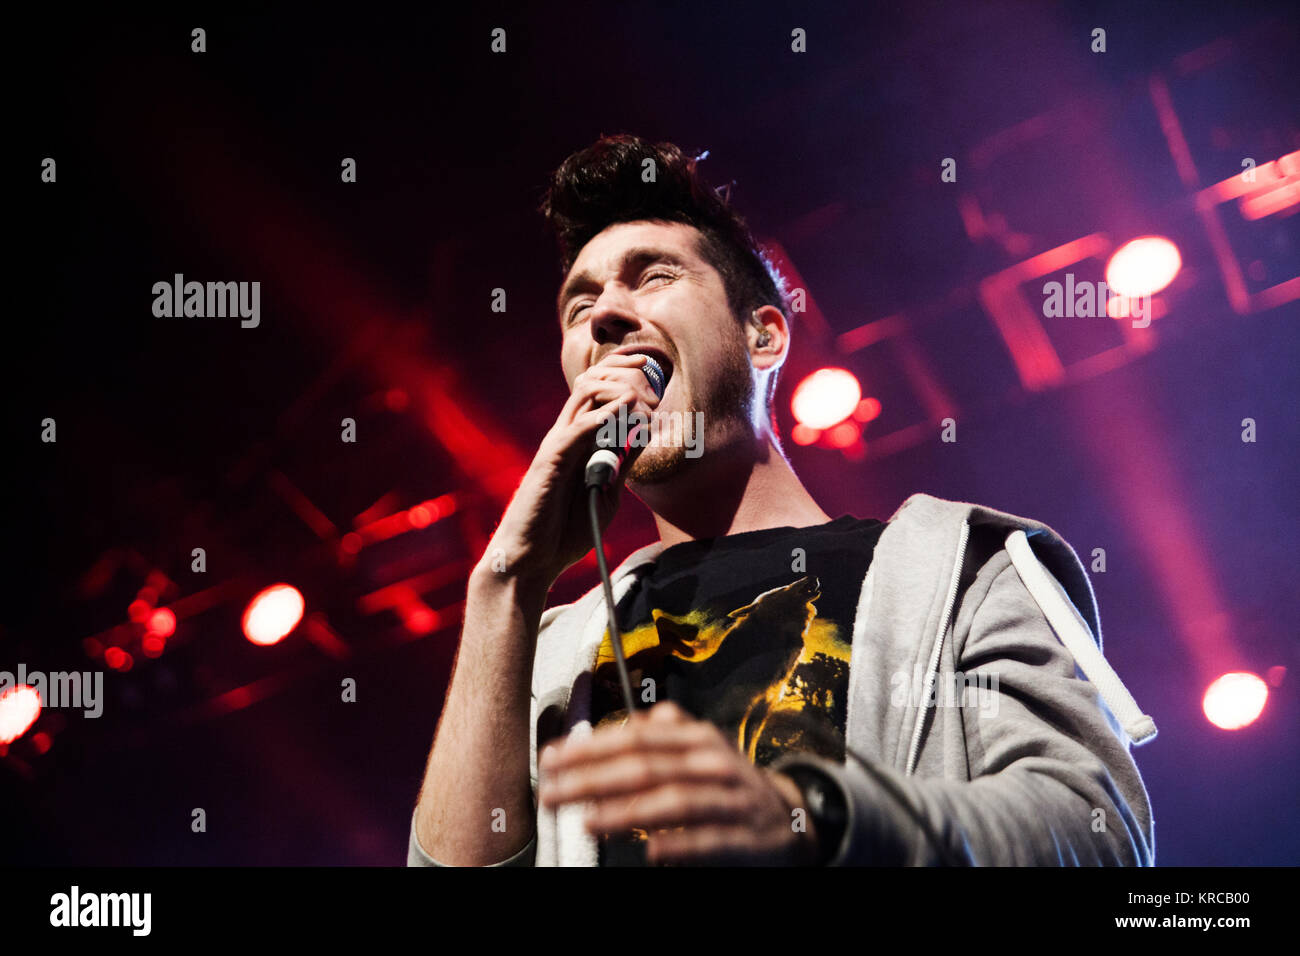 The English indie rock and synth pop band Bastille (stylised as BΔSTILLE) performs a live concert at VEGA in Copenhagen. - Stock Image